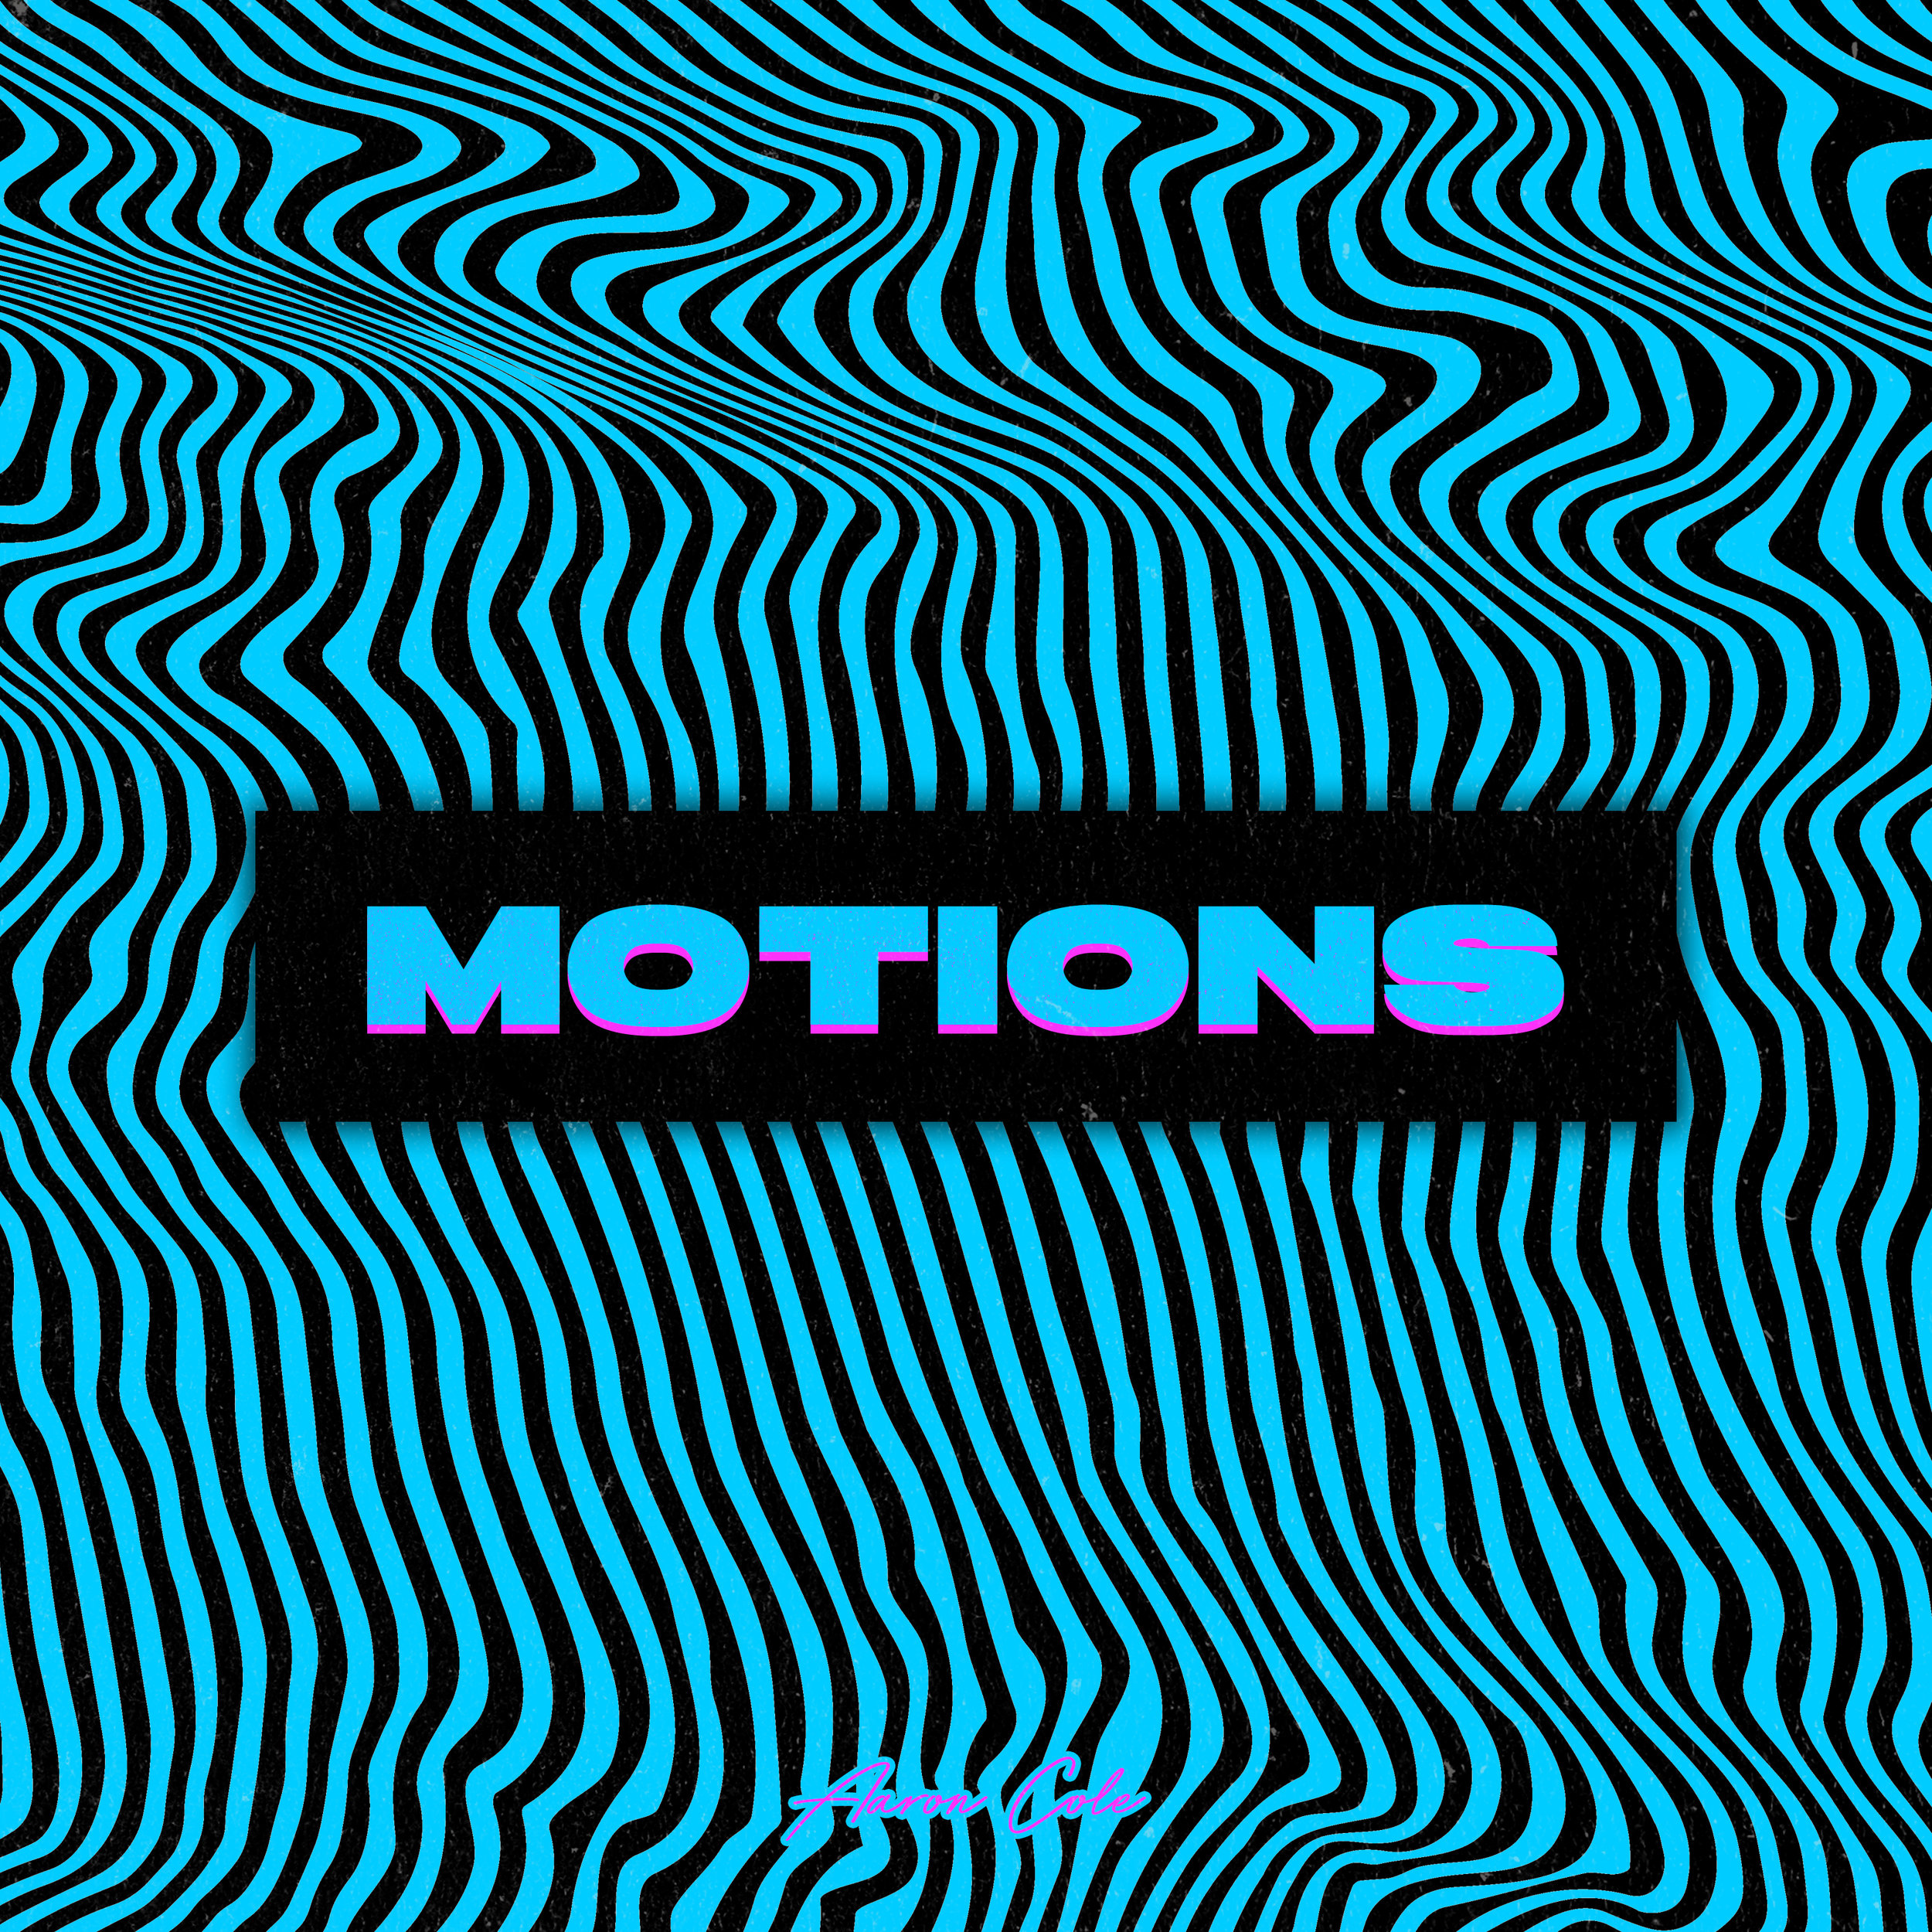 MOTIONS - COVER ART-12.jpg